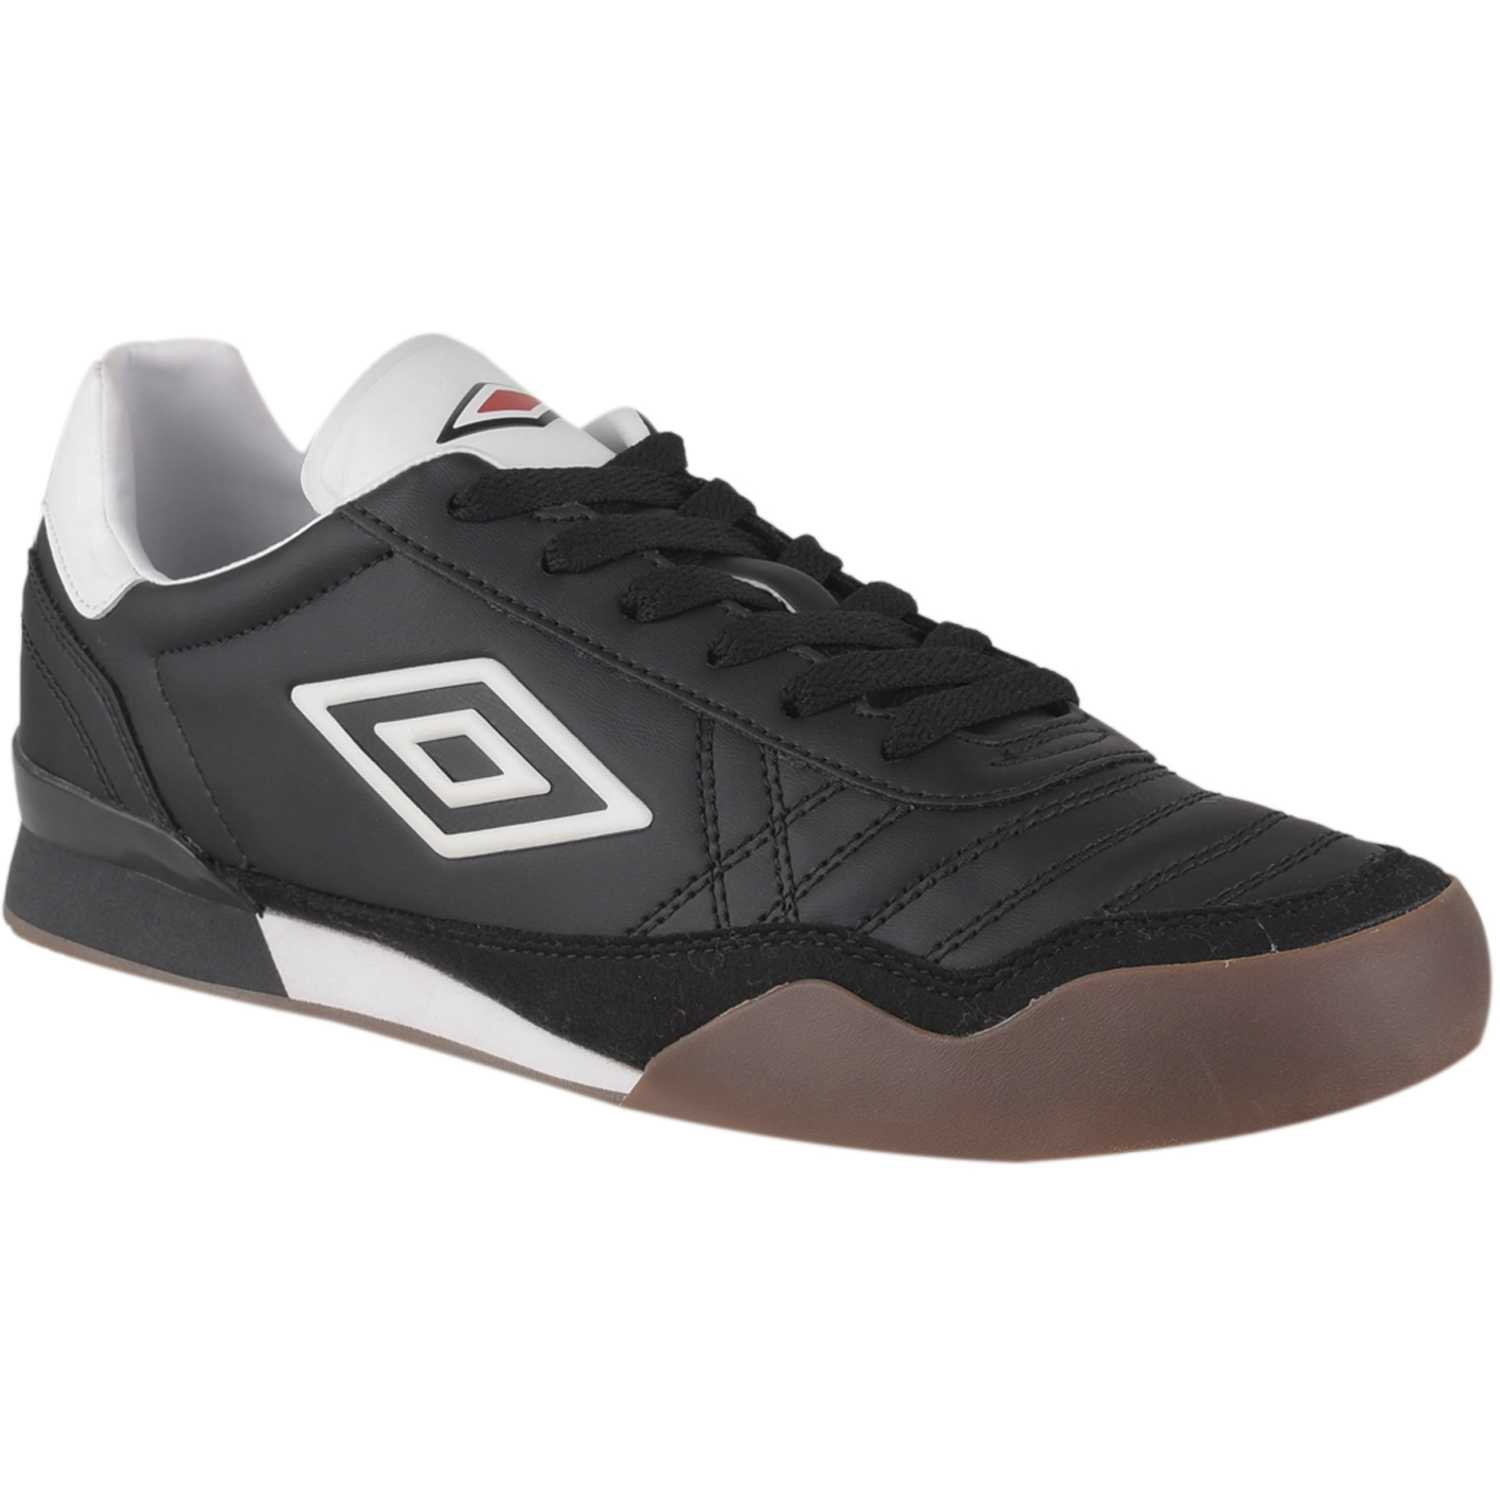 Umbro umbro 5v5 Negro Walking